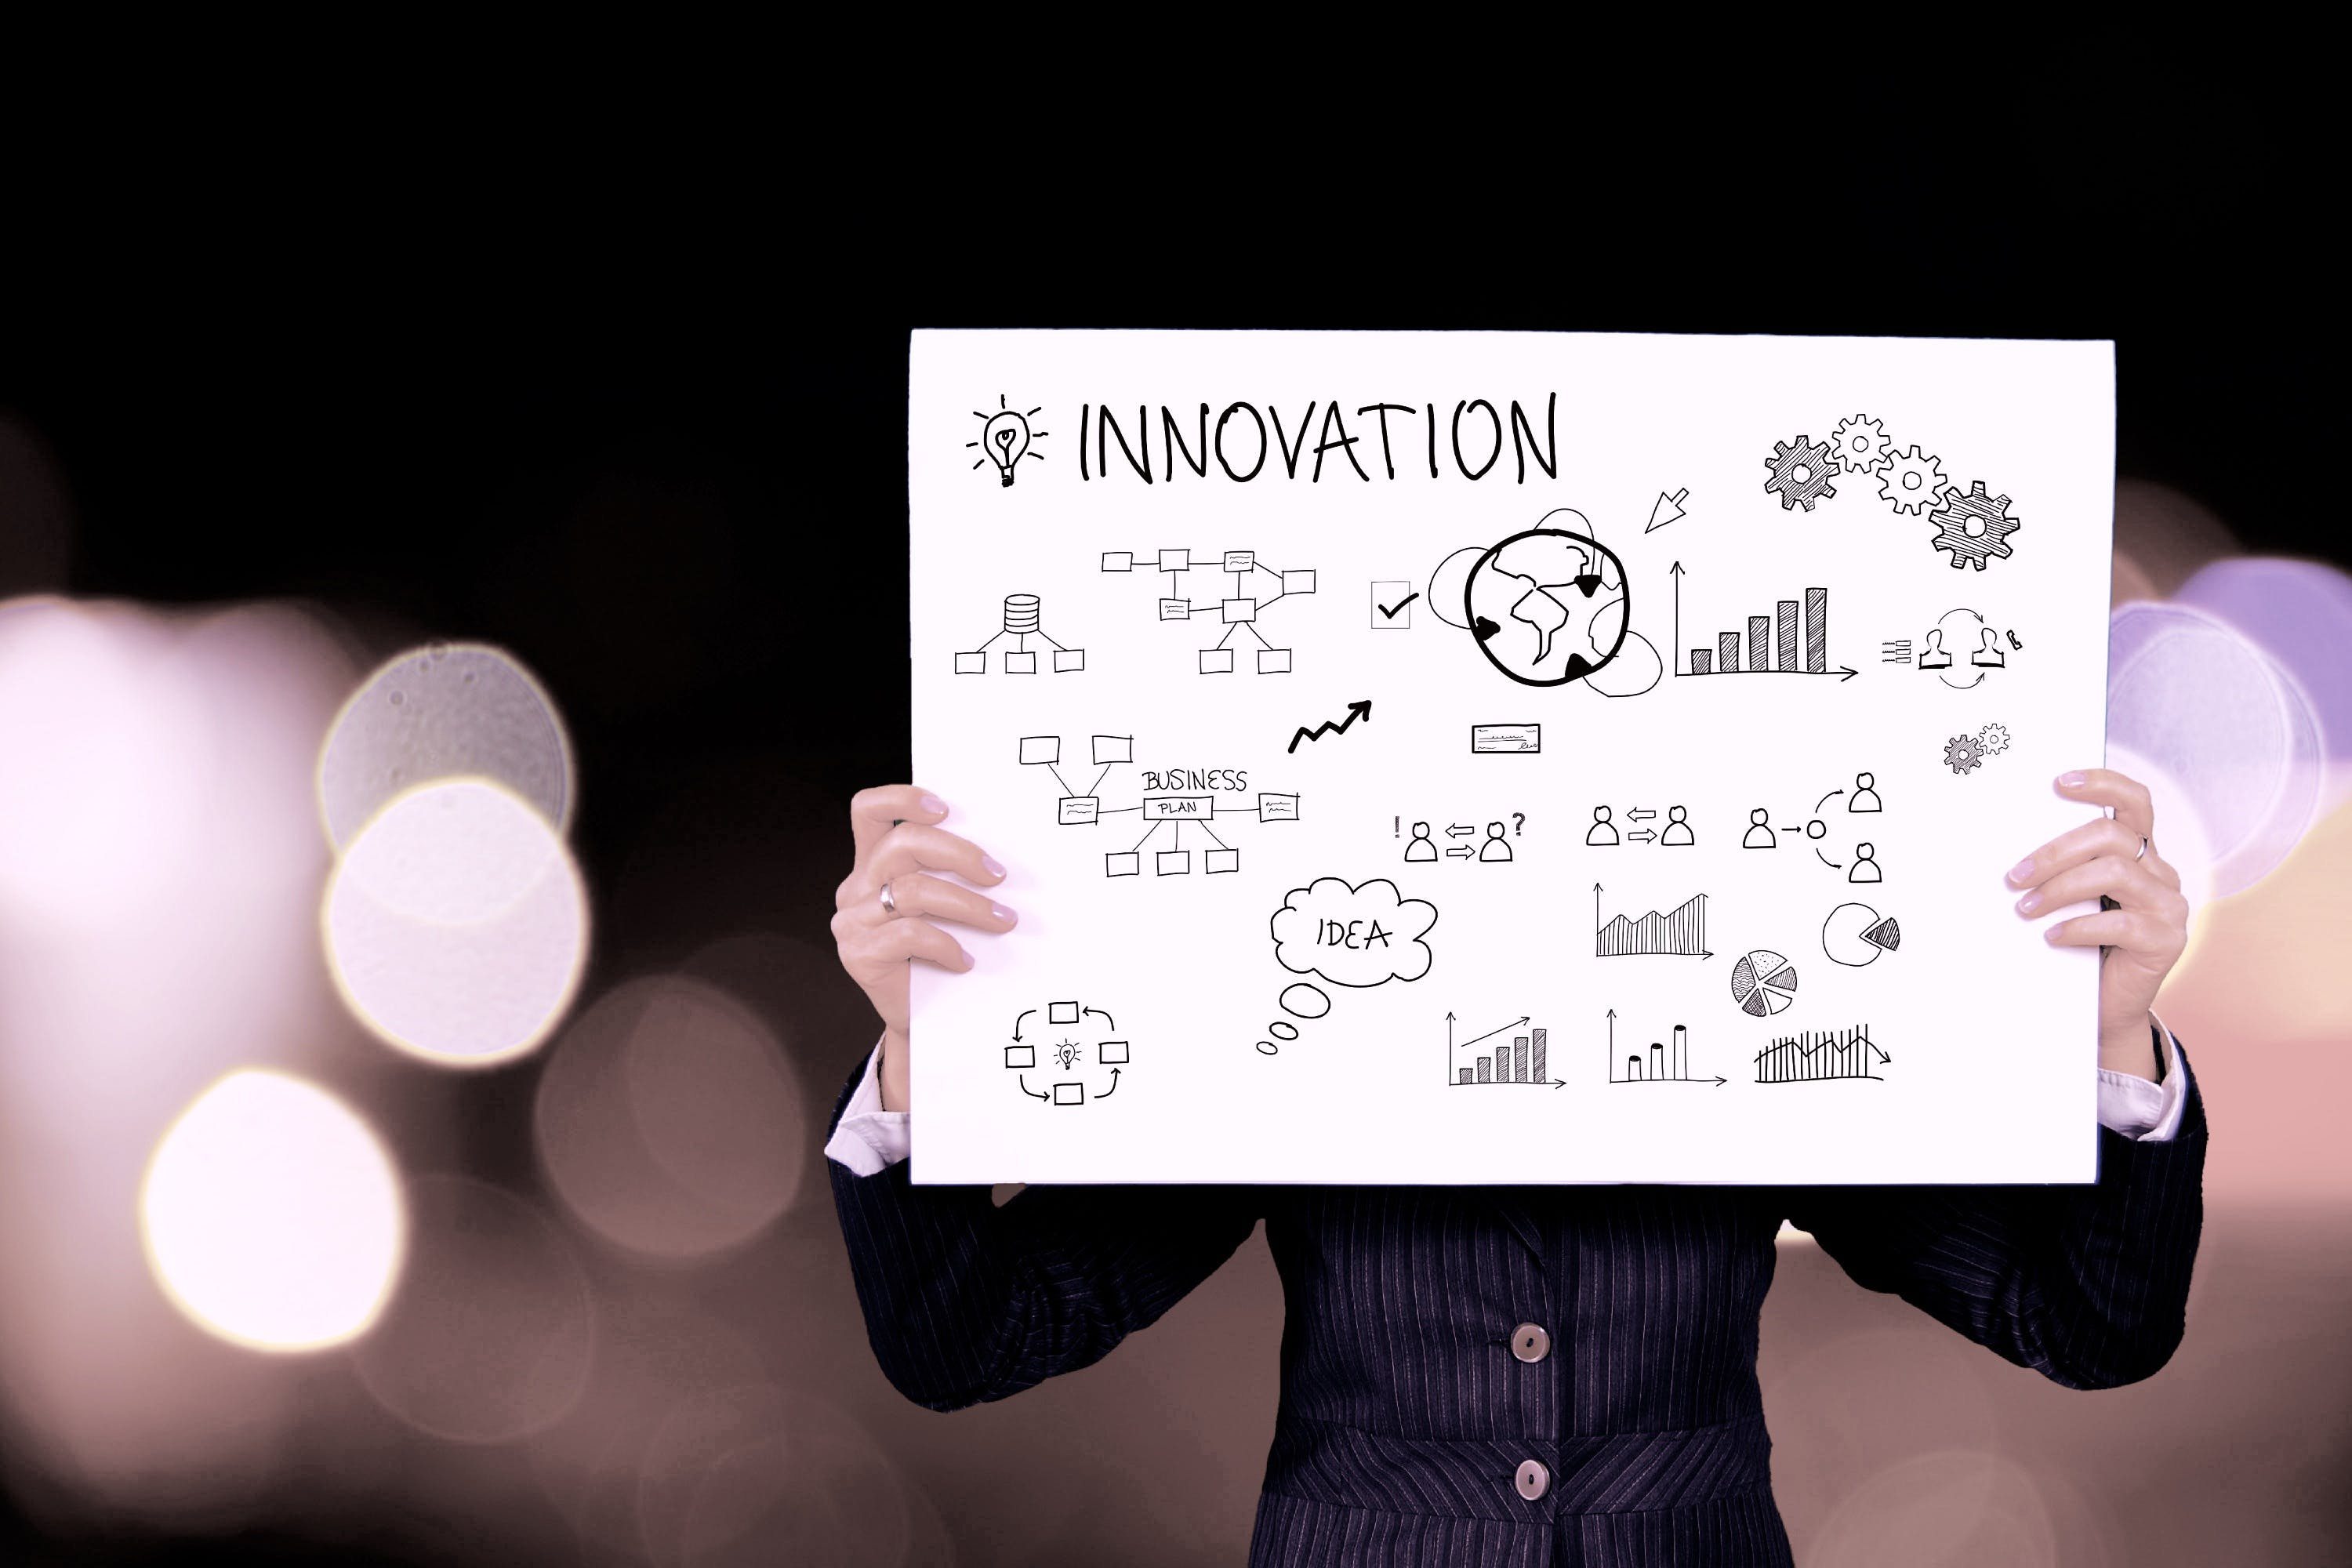 A person holding an innovation board